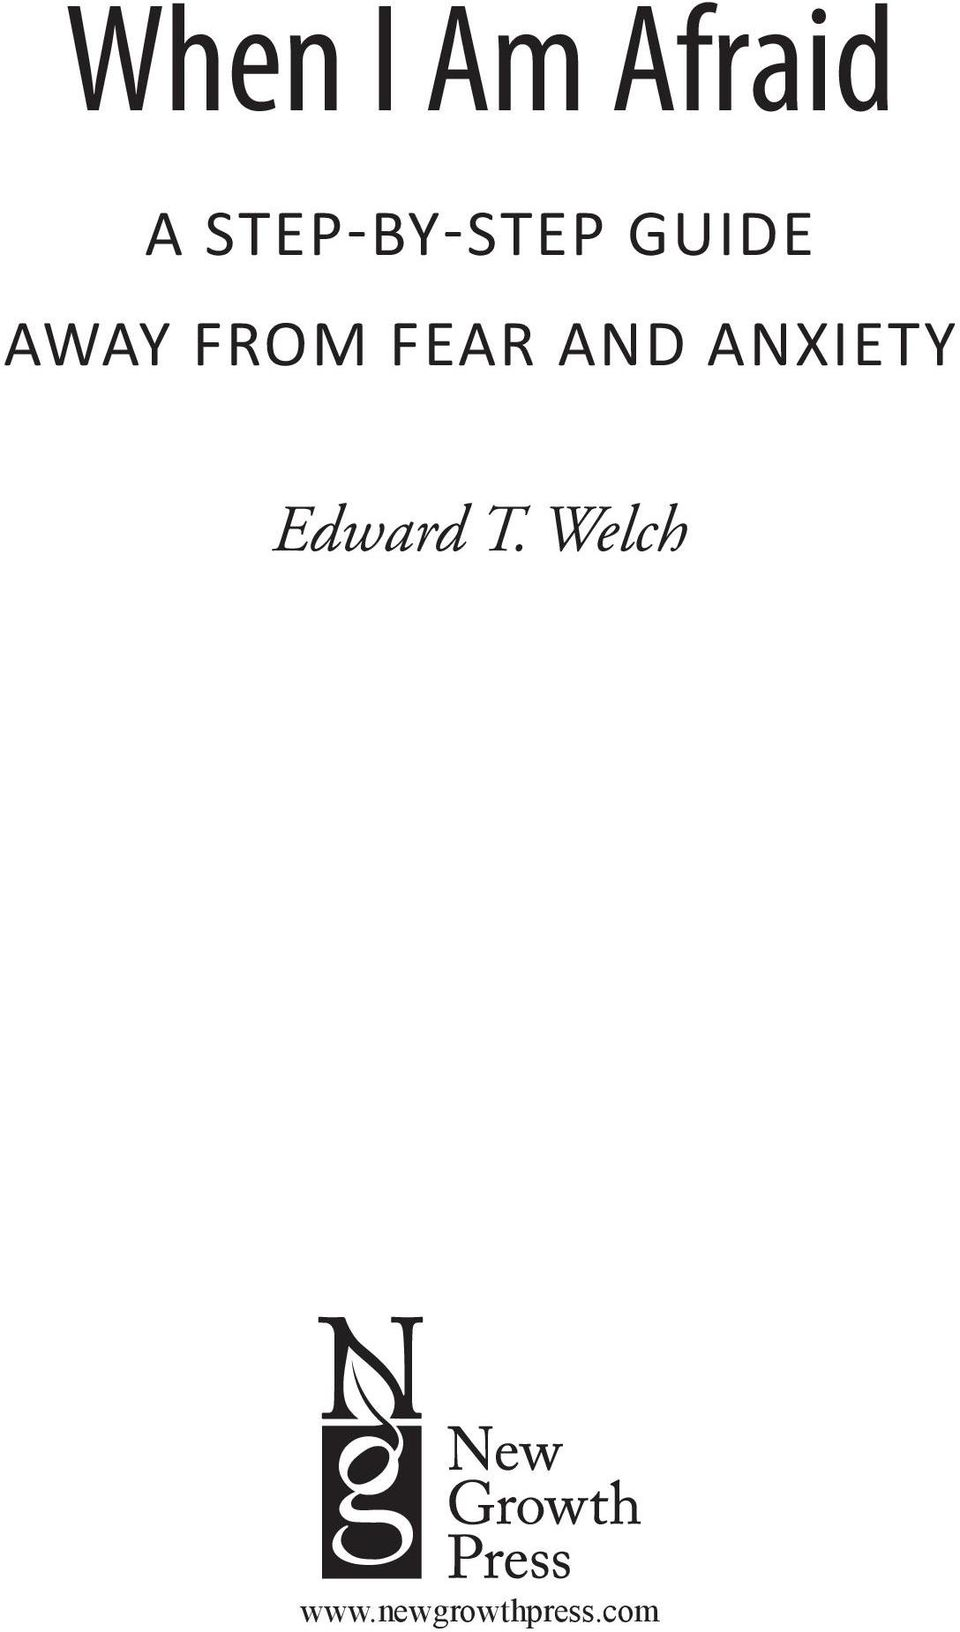 from Fear and Anxiety